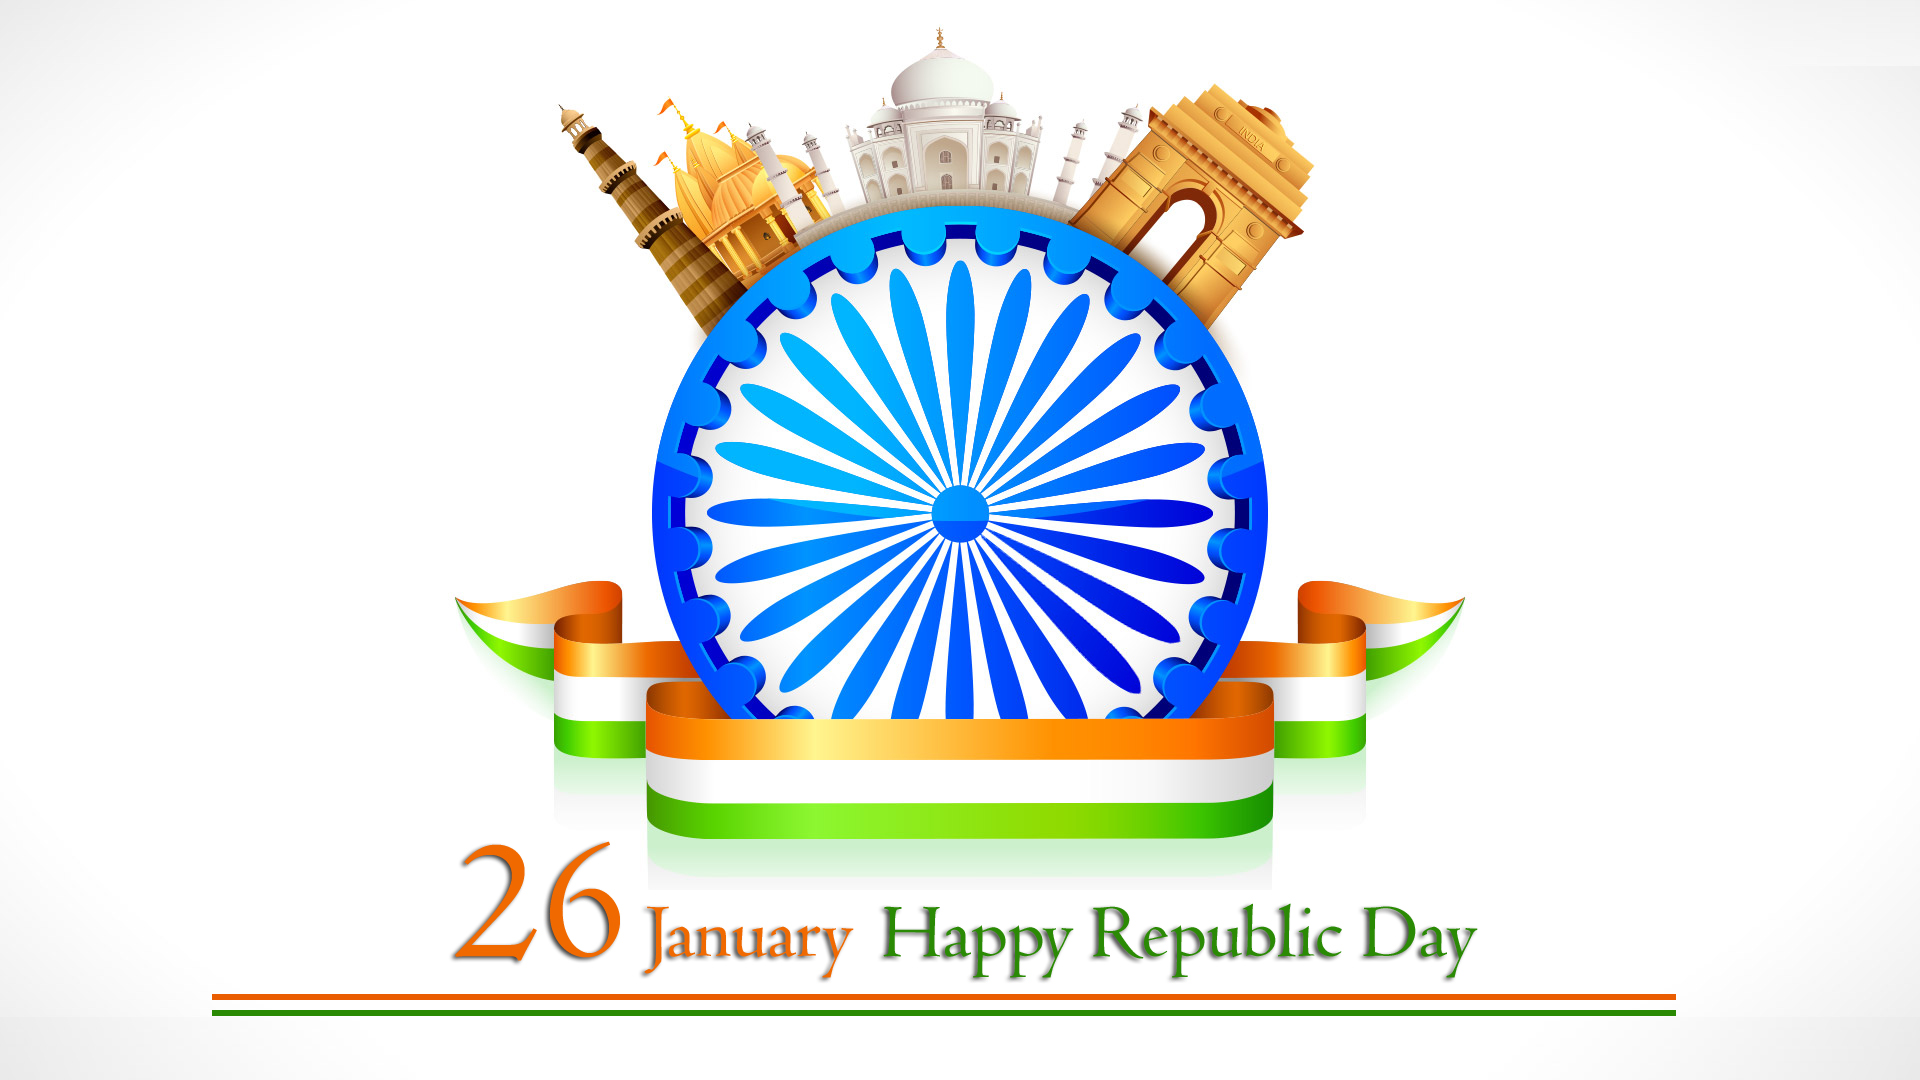 Happy republic day 2018 greetings speeches images wallpapers republic day images m4hsunfo Image collections